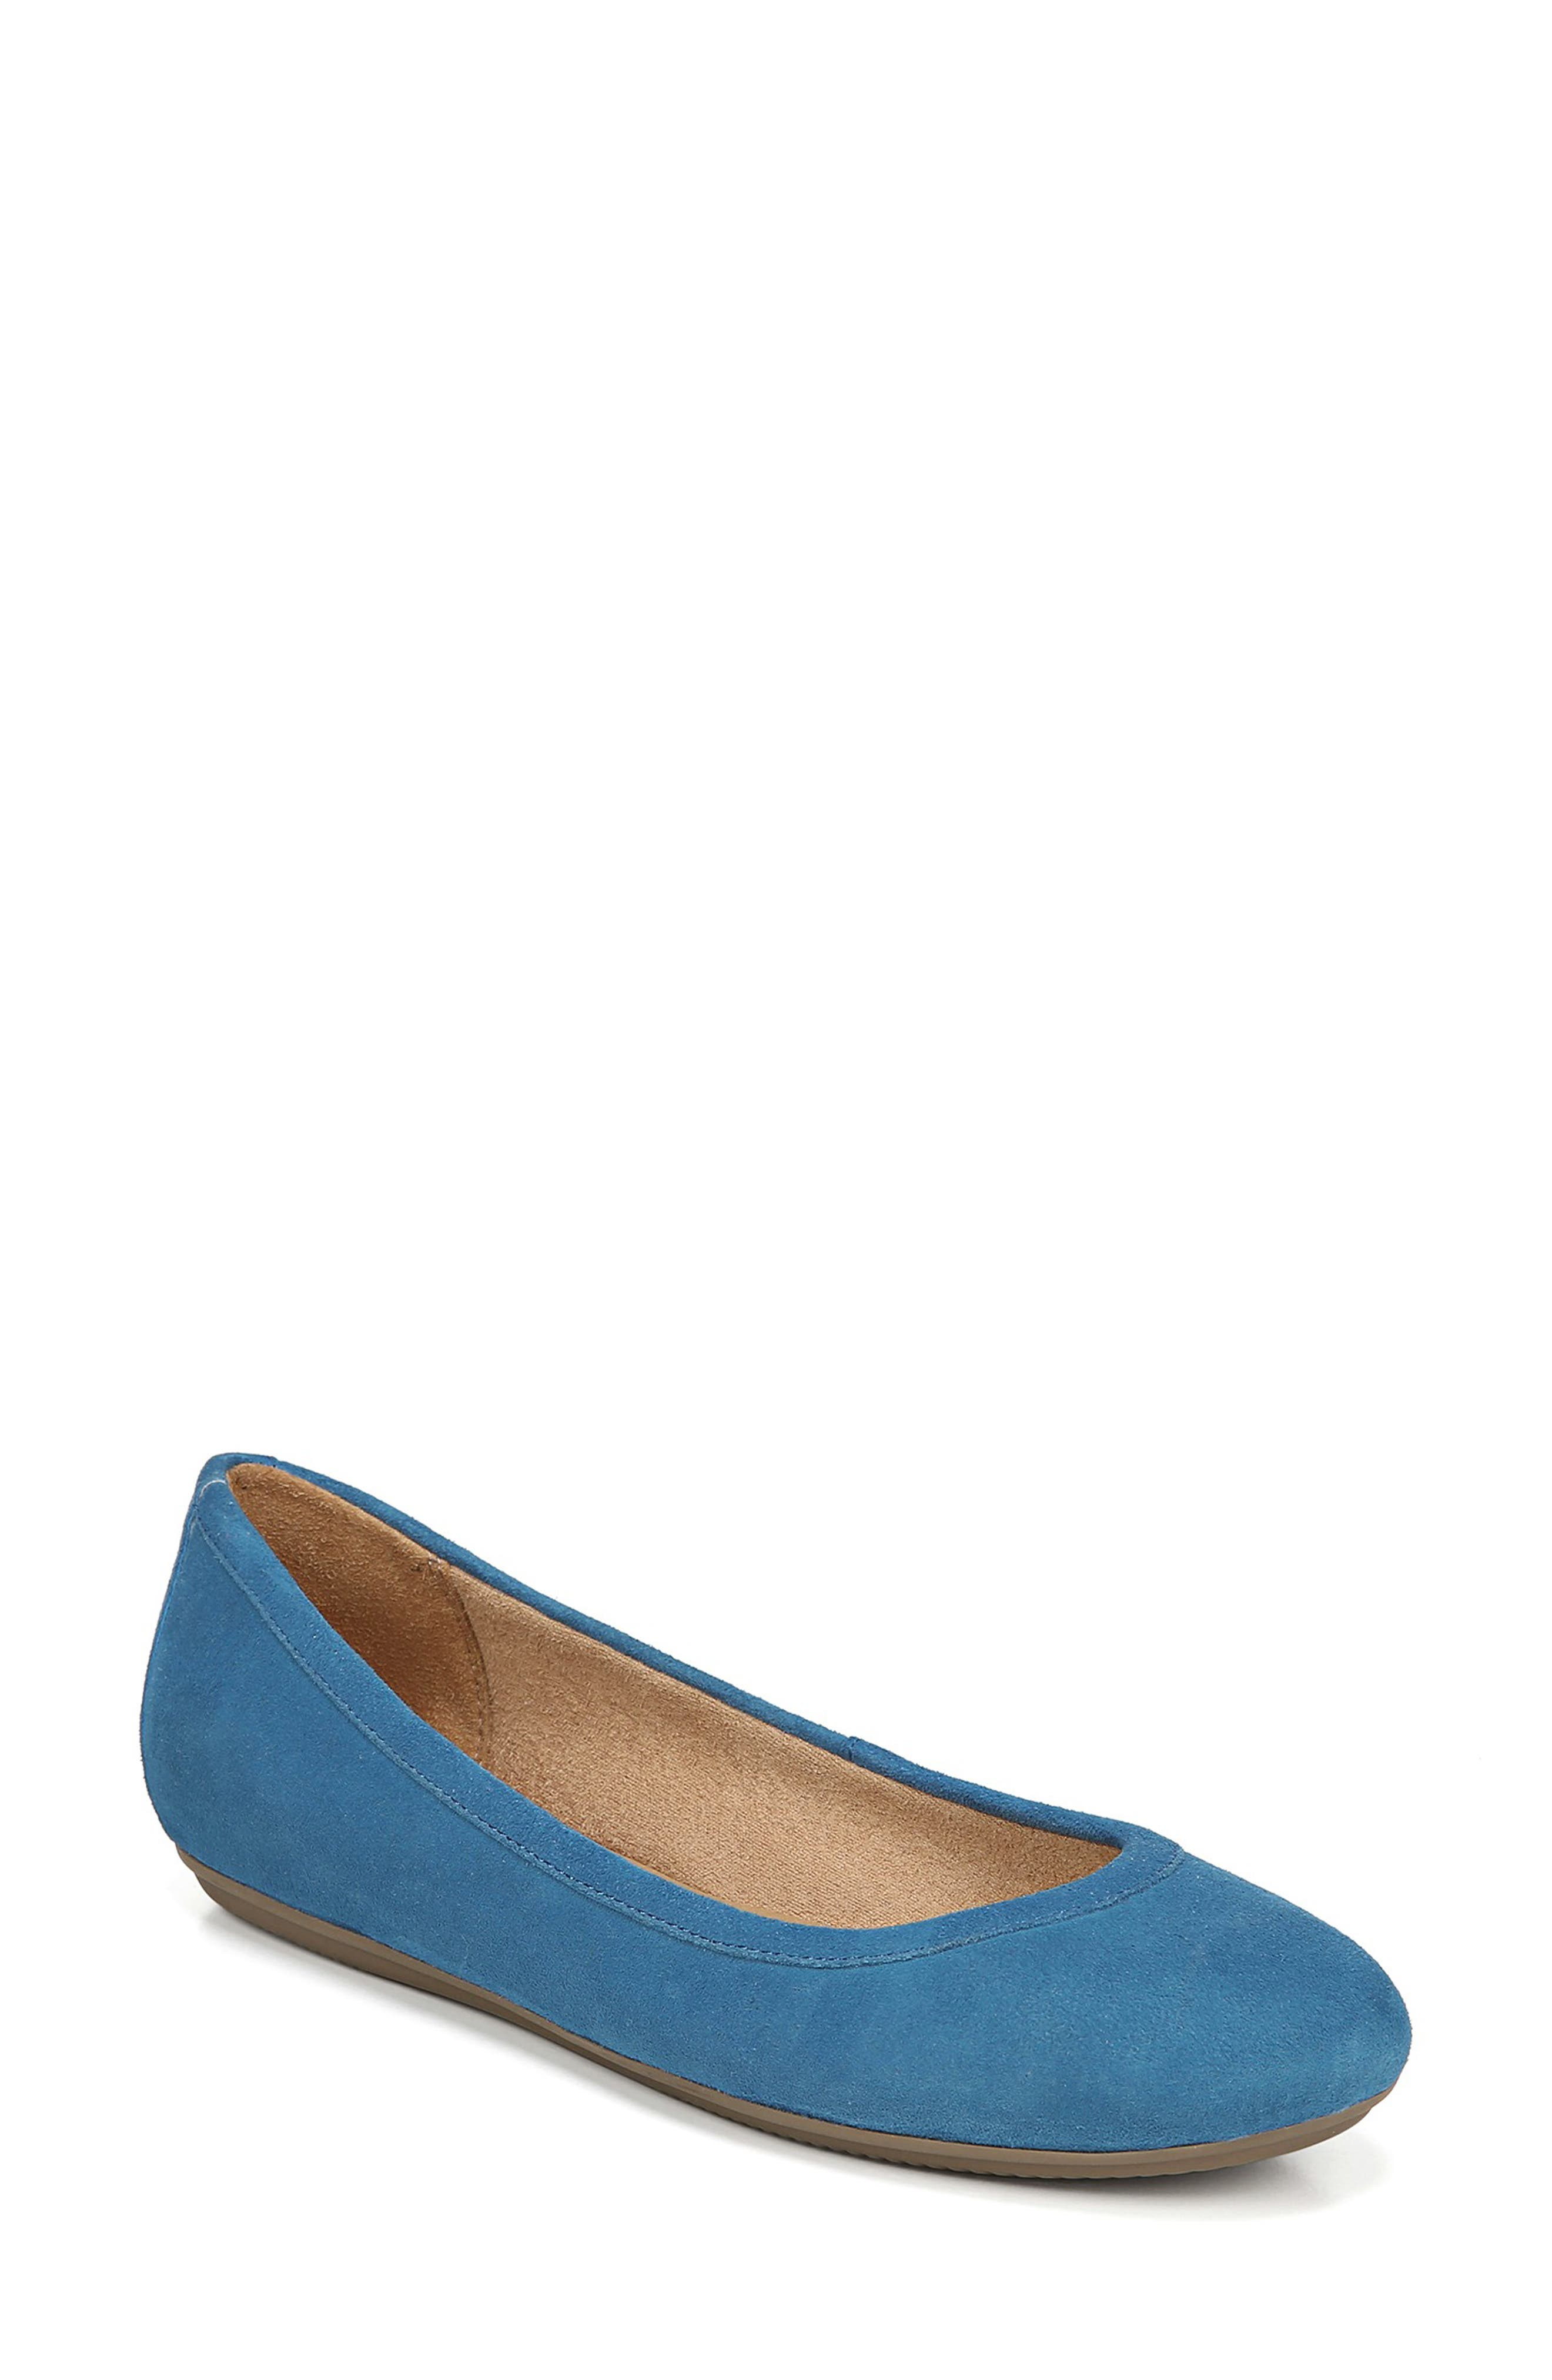 Brittany Flat,                             Main thumbnail 1, color,                             ADMIRAL BLUE LEATHER